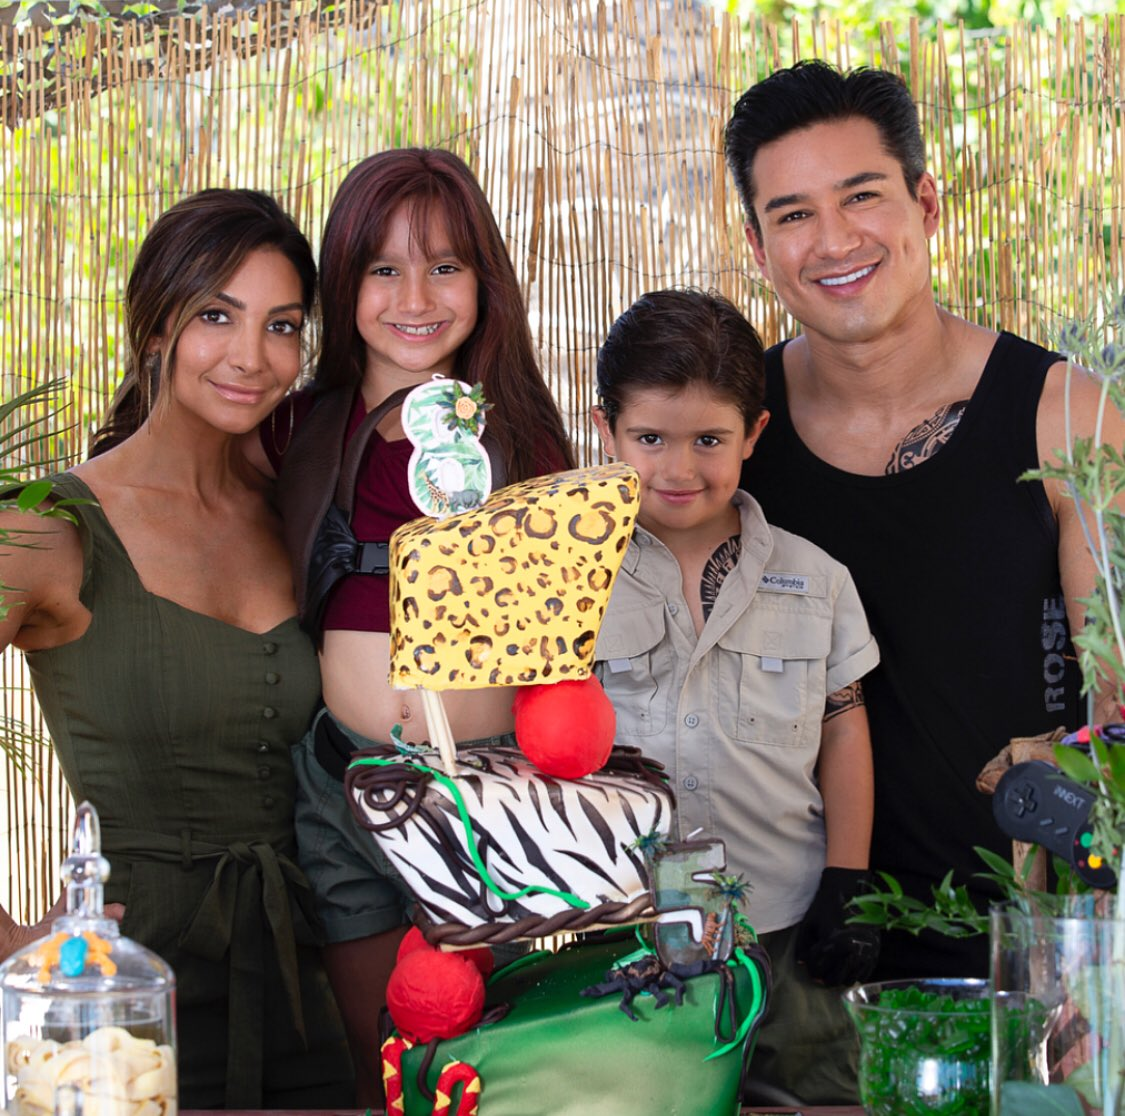 #FBF  Fun time celebrating the kids' b-day party this past Saturday!  #Jumanji  #Gia  #Nico  #CasaLopez  #Familia